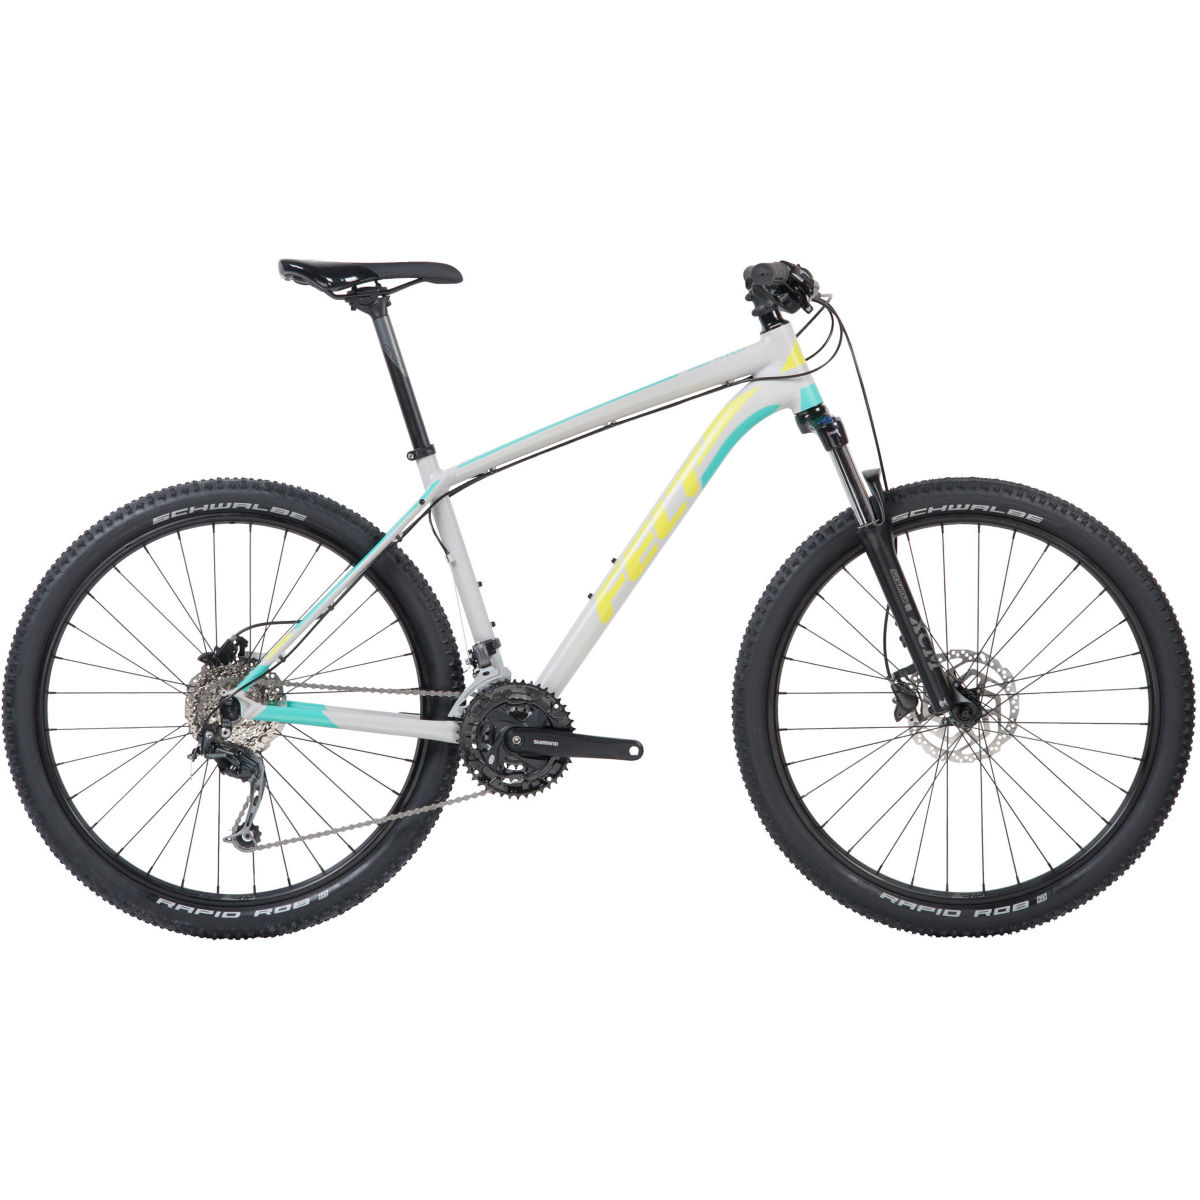 VTT semi-rigide Felt Dispatch 7/60 XC (2018) - 18'' Stock Bike